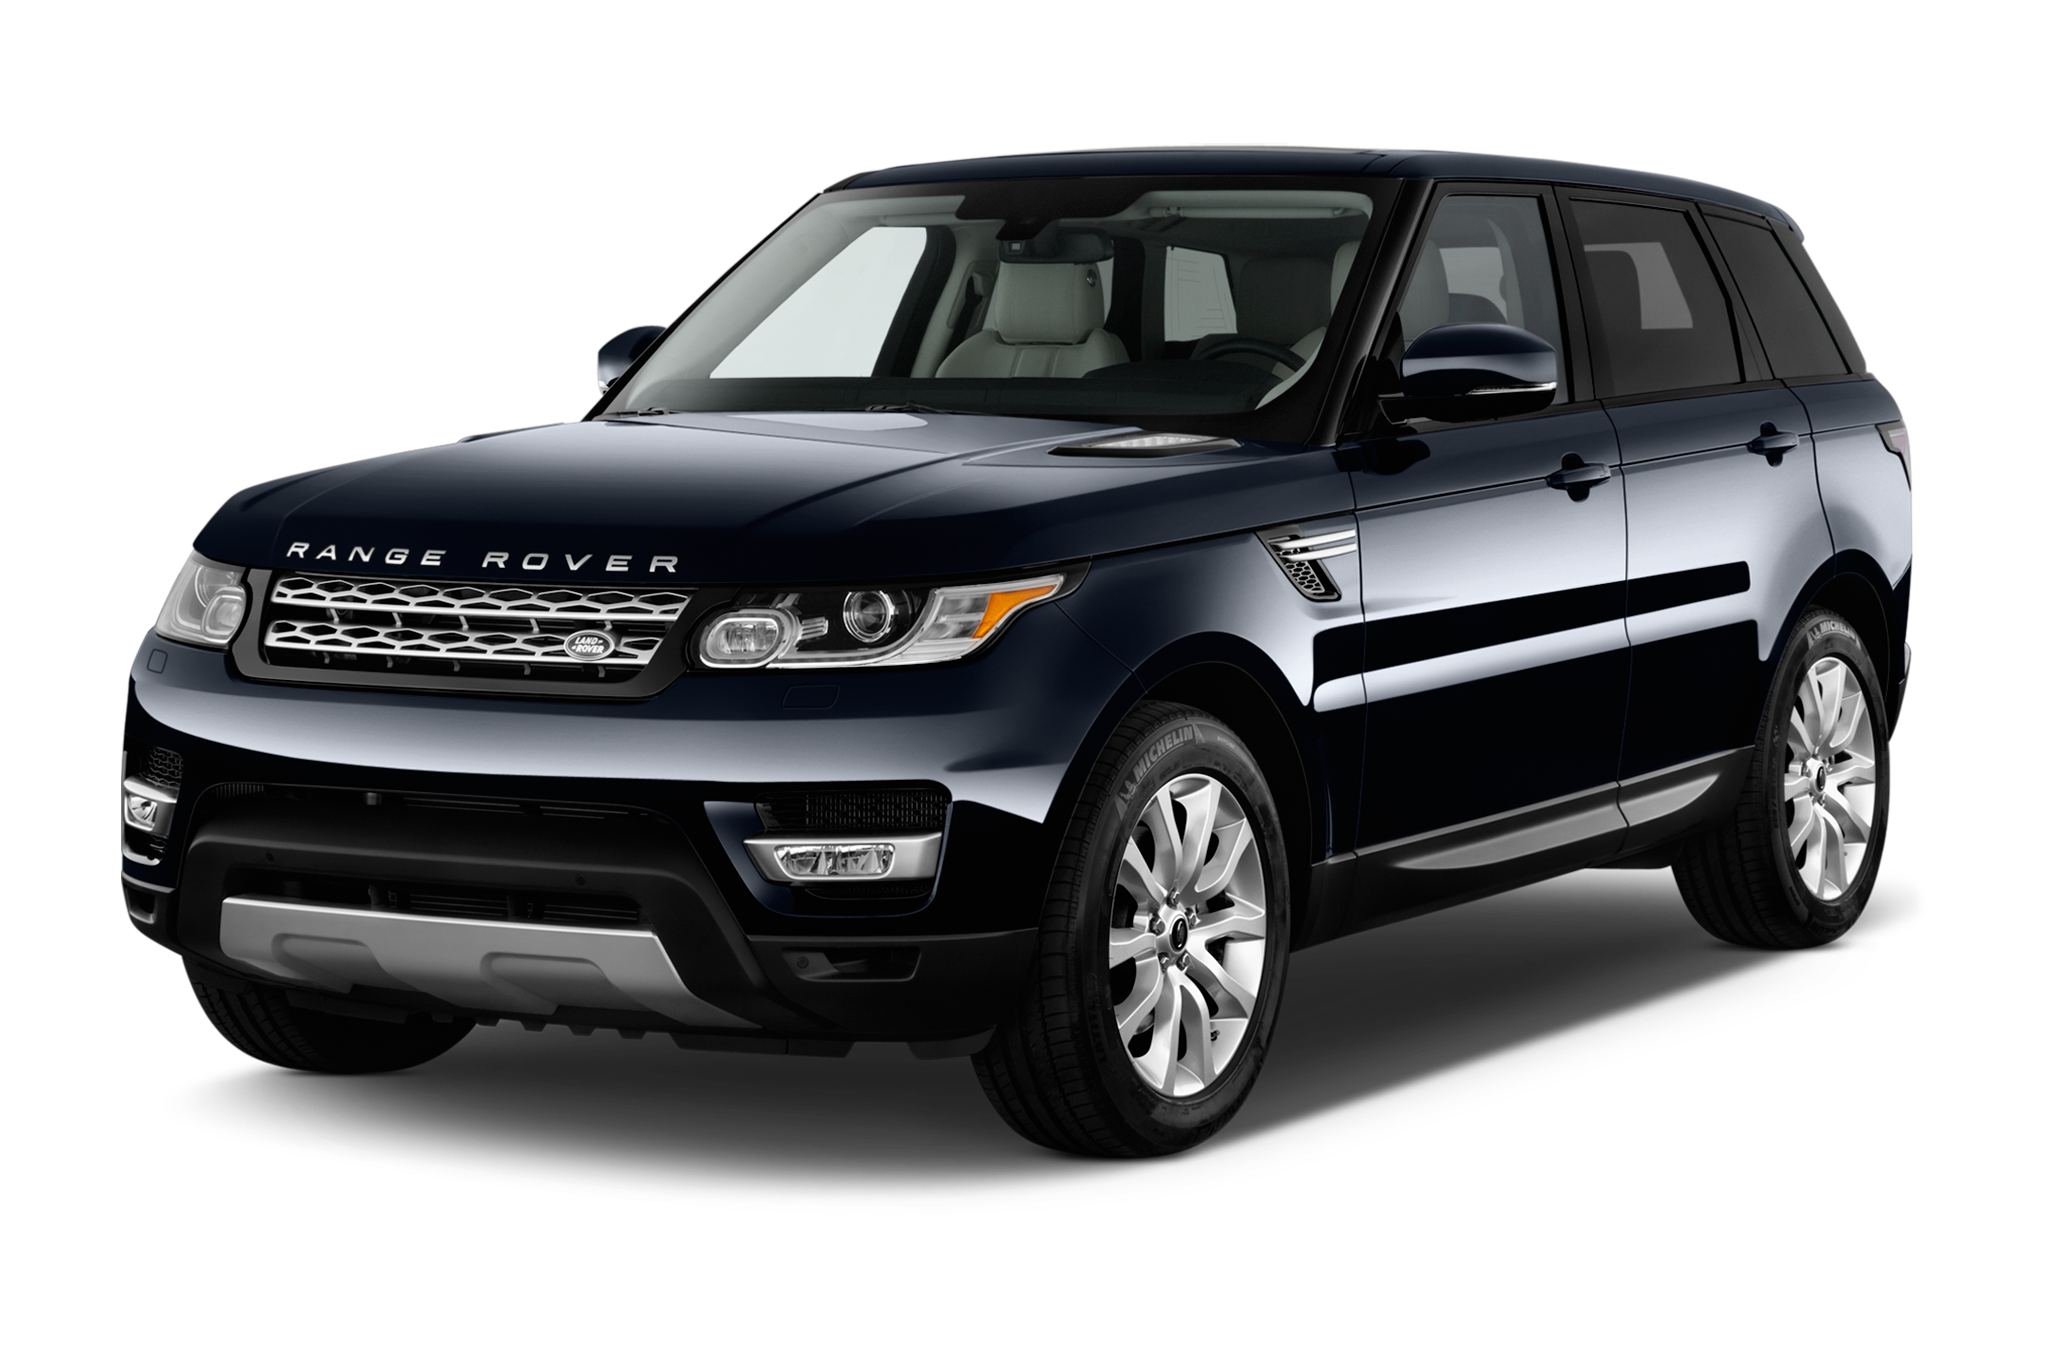 pure sale for wiki door landrover tech evoque land rover wikipedia range five wagon